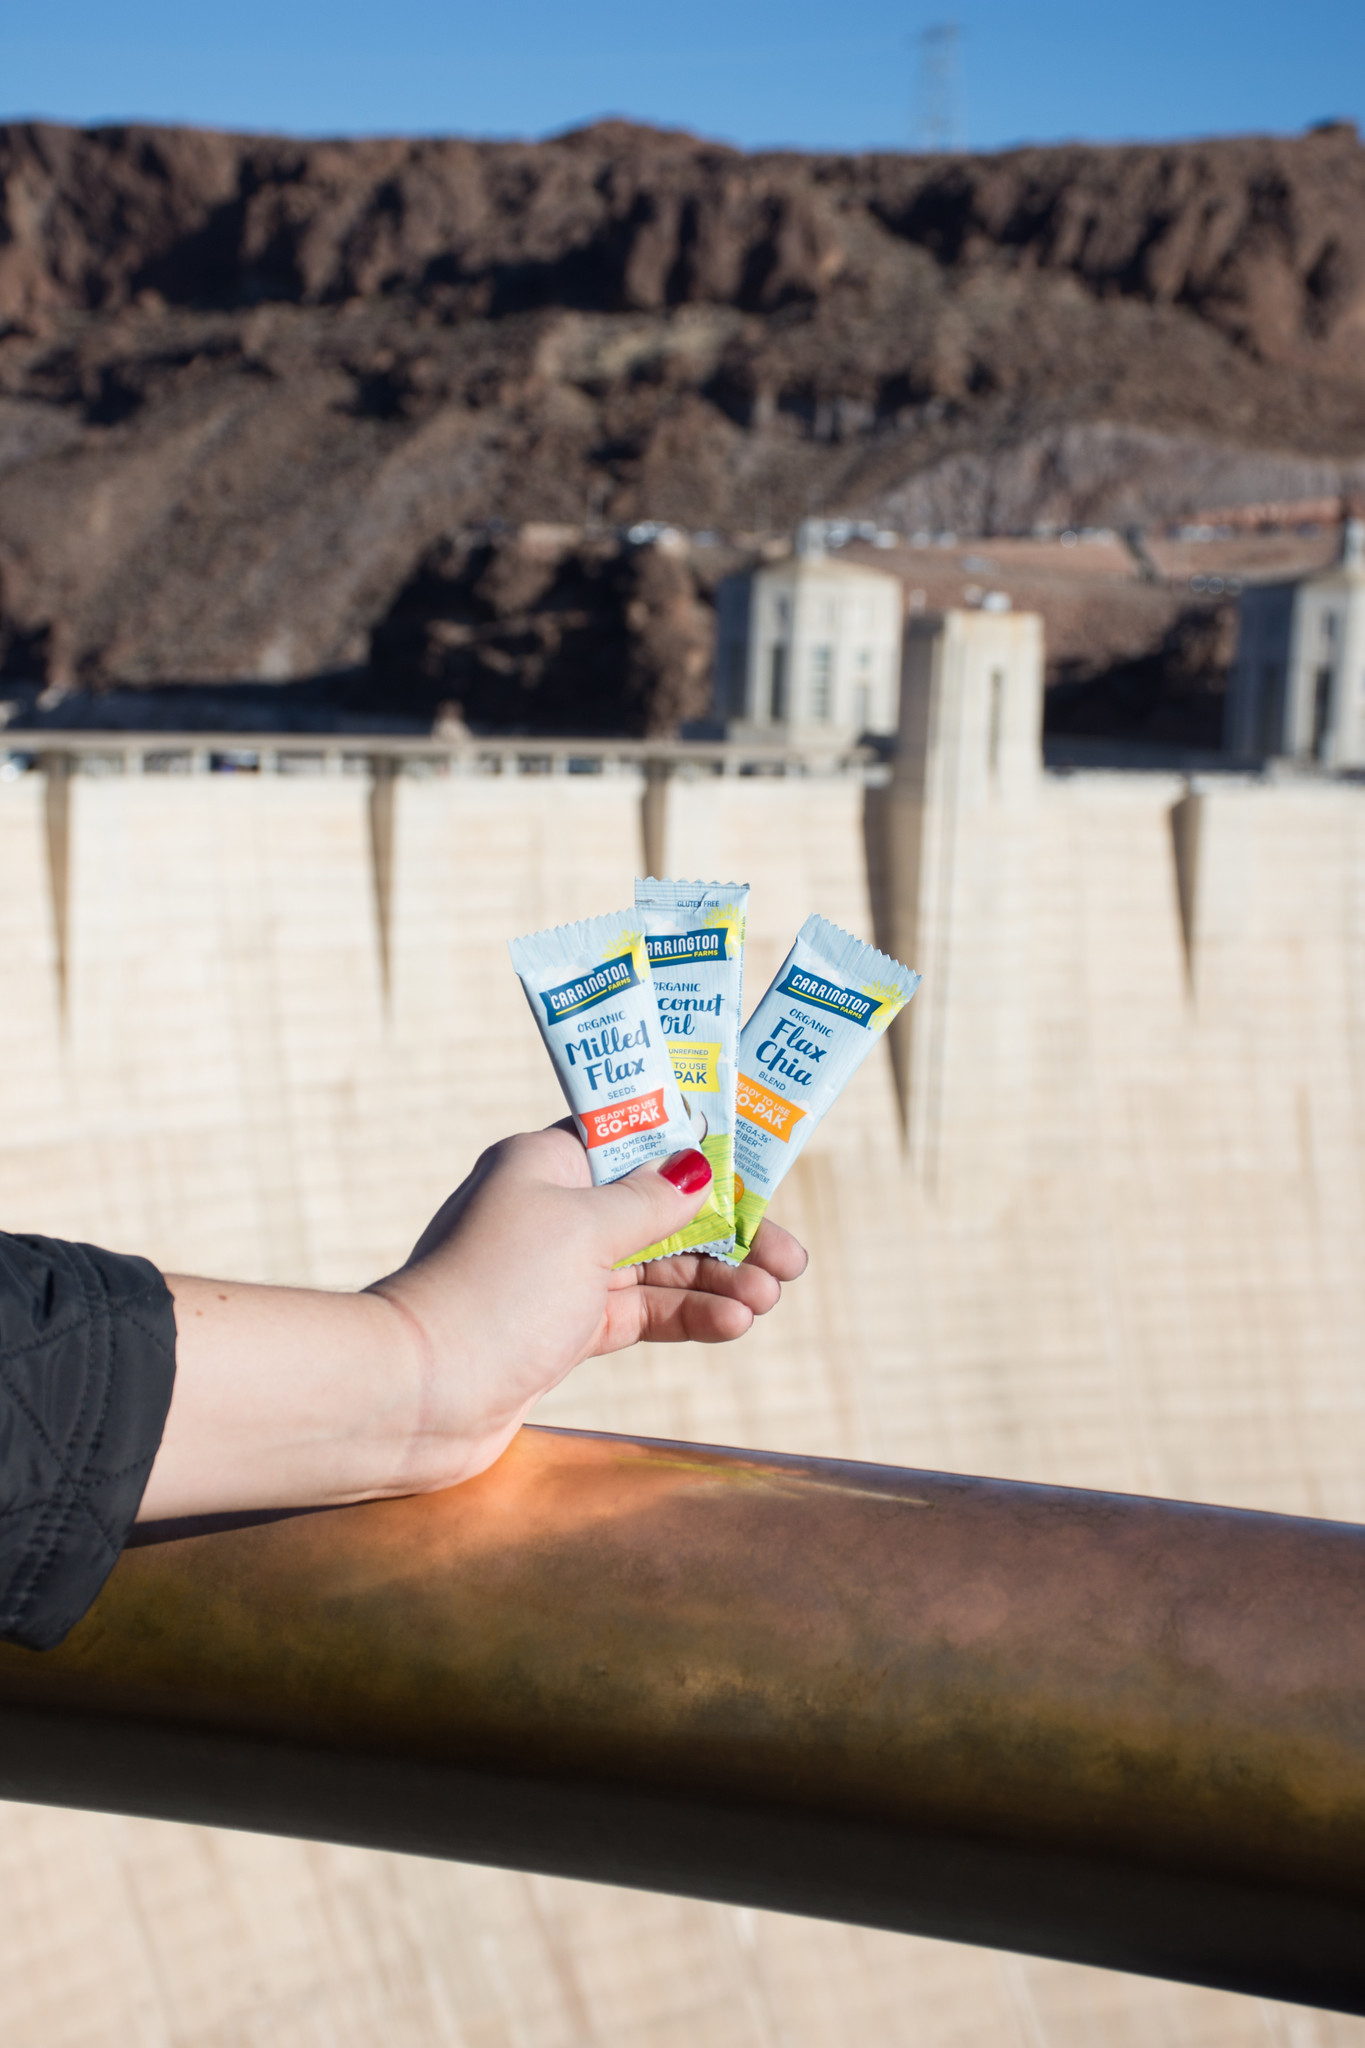 Hoover Dam and our Paks